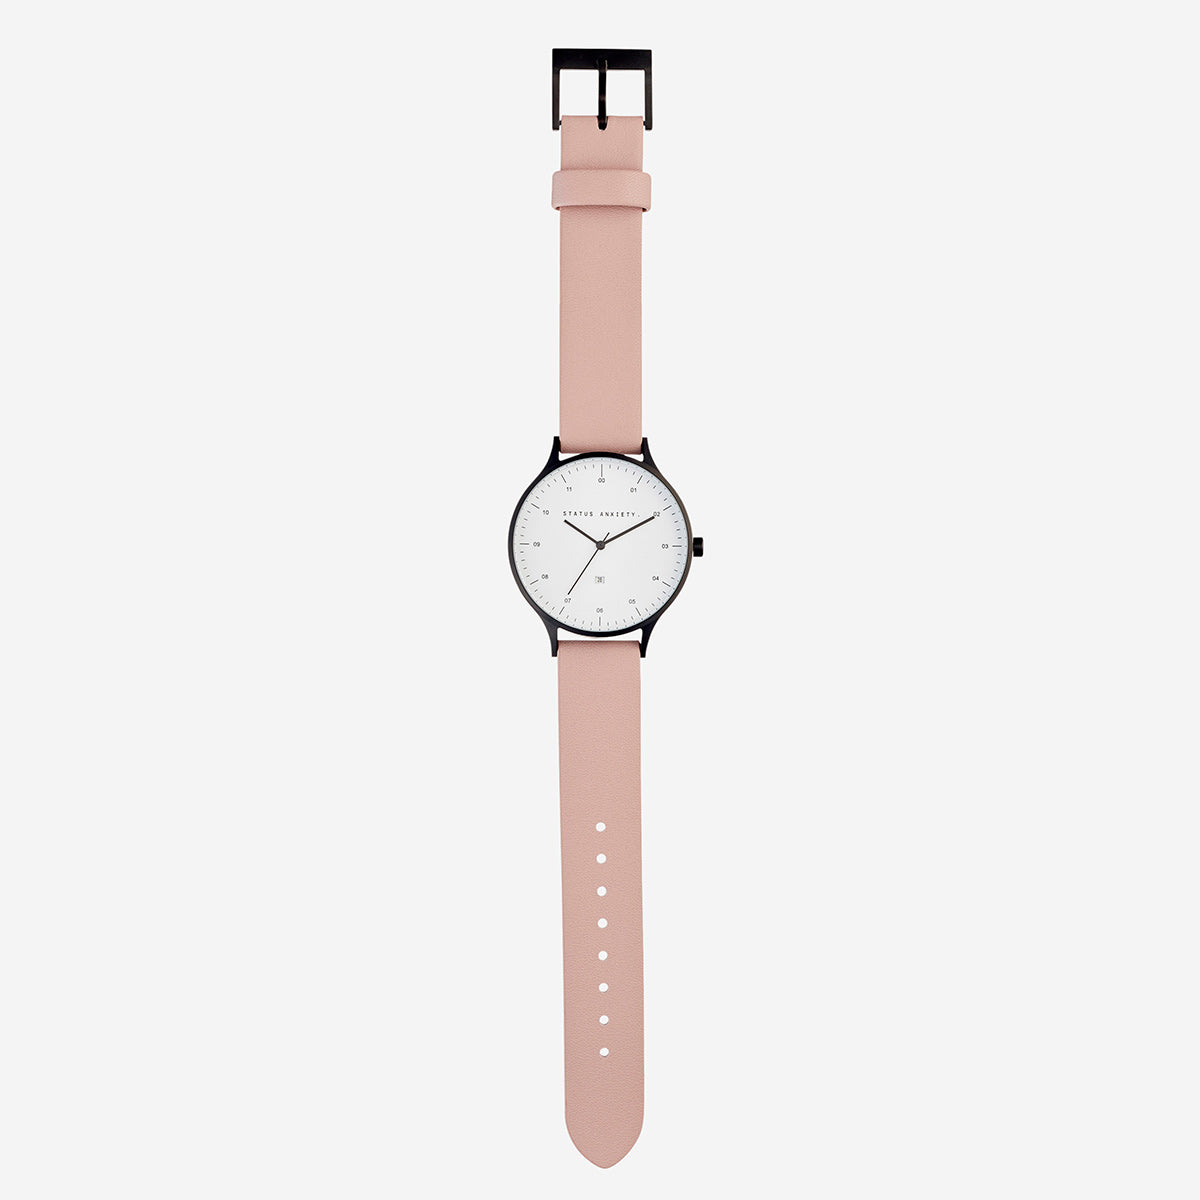 Status Anxiety Inertia Leather Unisex Watch - Matte Black/White Face/Blush Strap